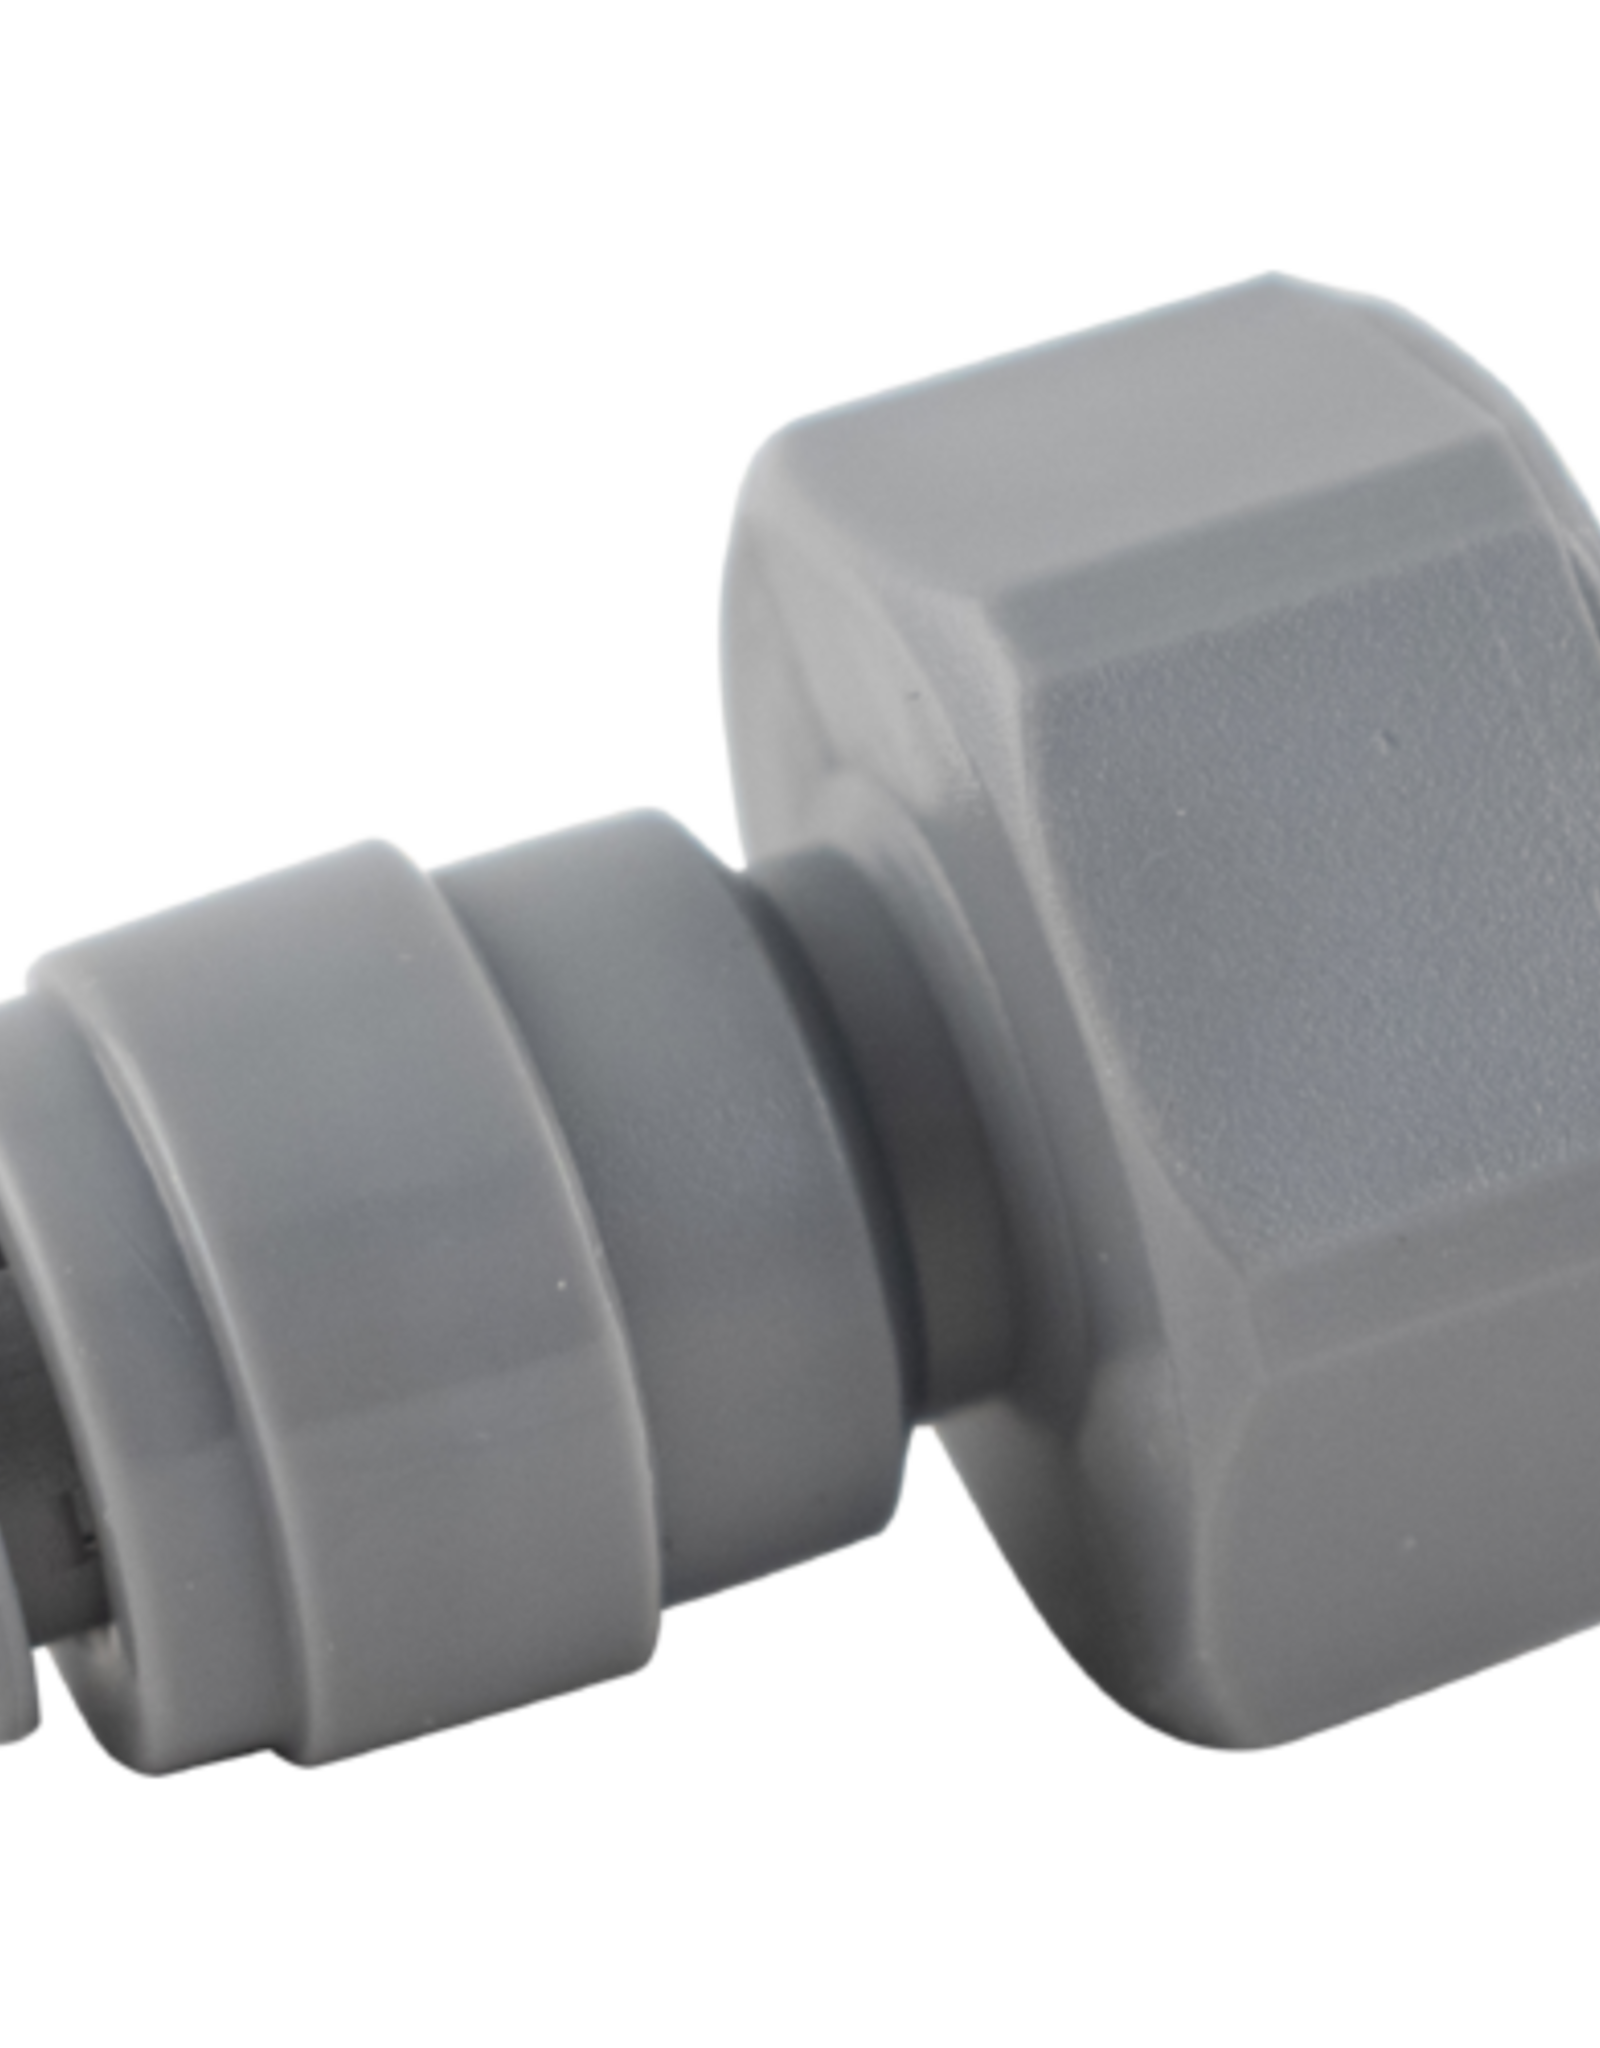 DUOTIGHT Duotight Push-In Fitting - 8 mm (5/16 in.) x Female Beer Thread